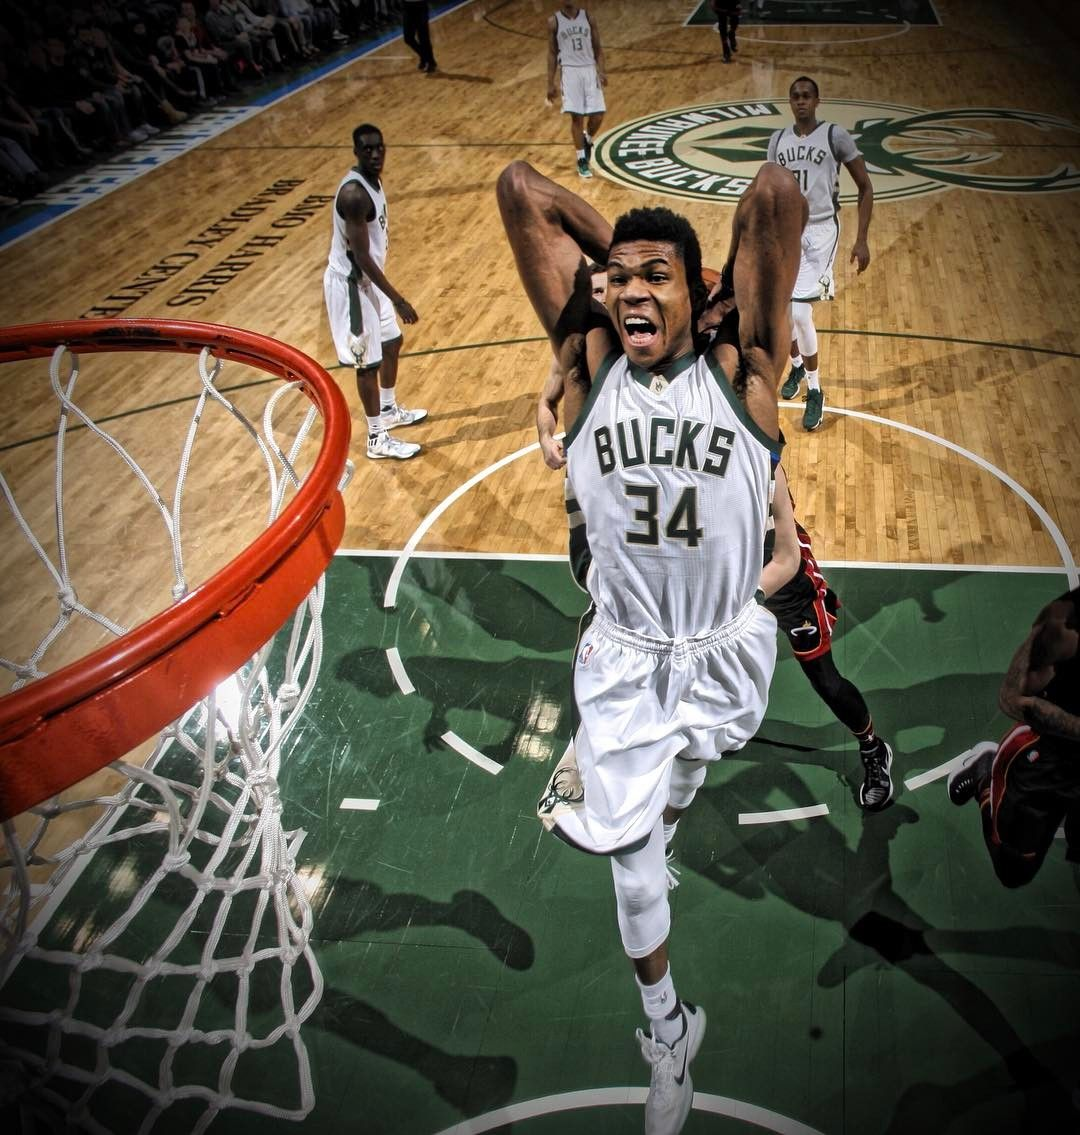 Giannis Antetokounmpo I Was Once Ten Feet Away From This Incredible Man At The Pacers Game Giannis Antetokounmpo Wallpaper Mvp Basketball Basketball